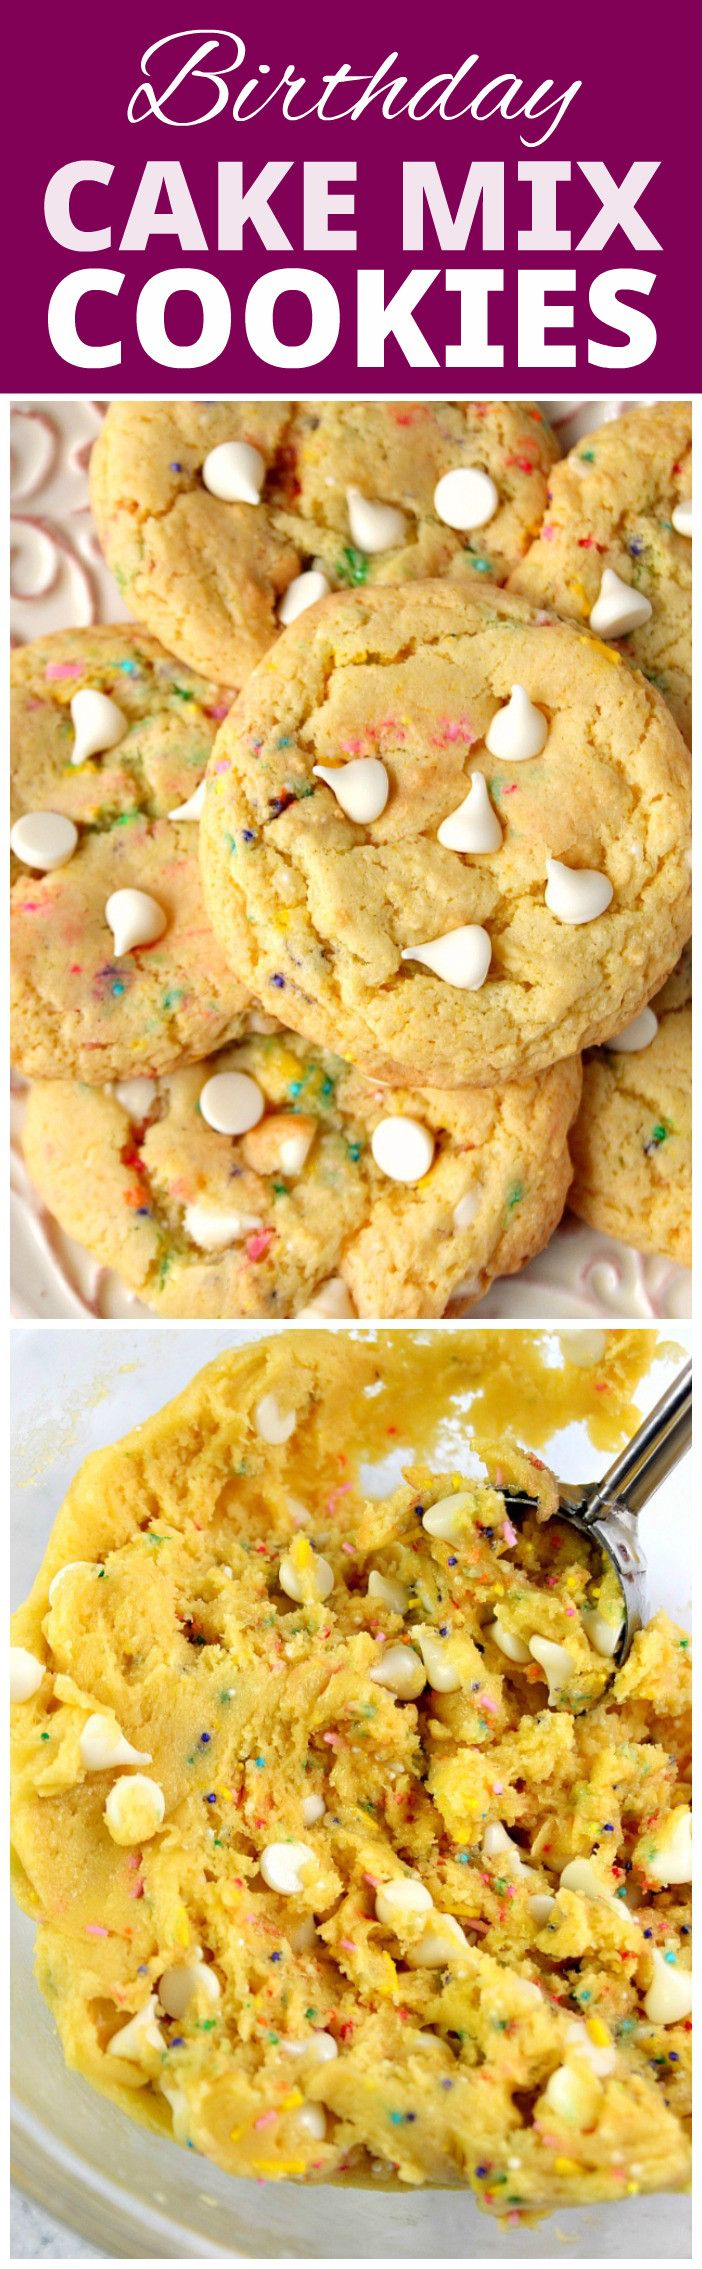 Birthday Cake Mix Cookies recipe - each cookie tastes like a slice of cake and white chocolate chips taste like vanilla frosting! You will love these cake mix cookies made with butter instead of oil.